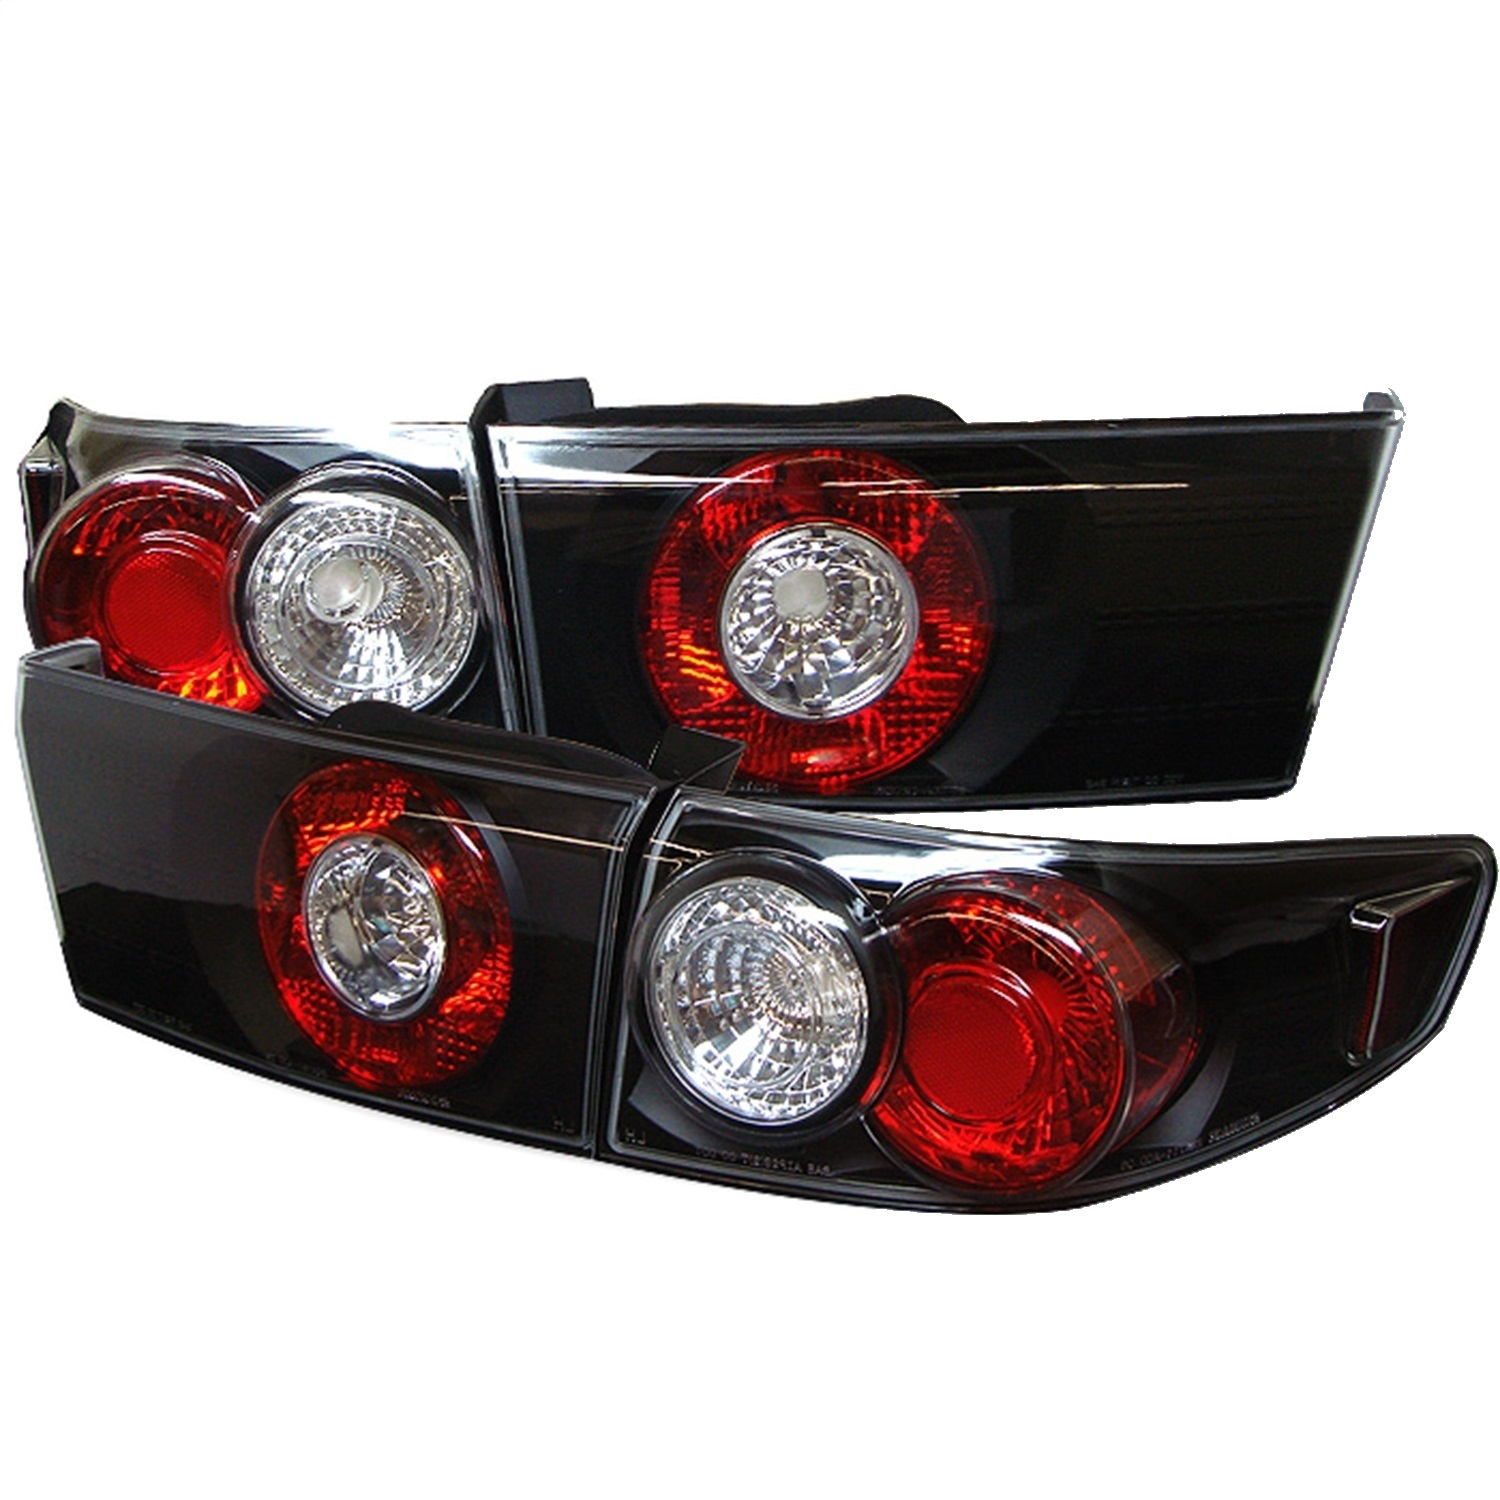 Spyder Auto 5003980 Euro Style Tail Lights Fits 03-05 Accord